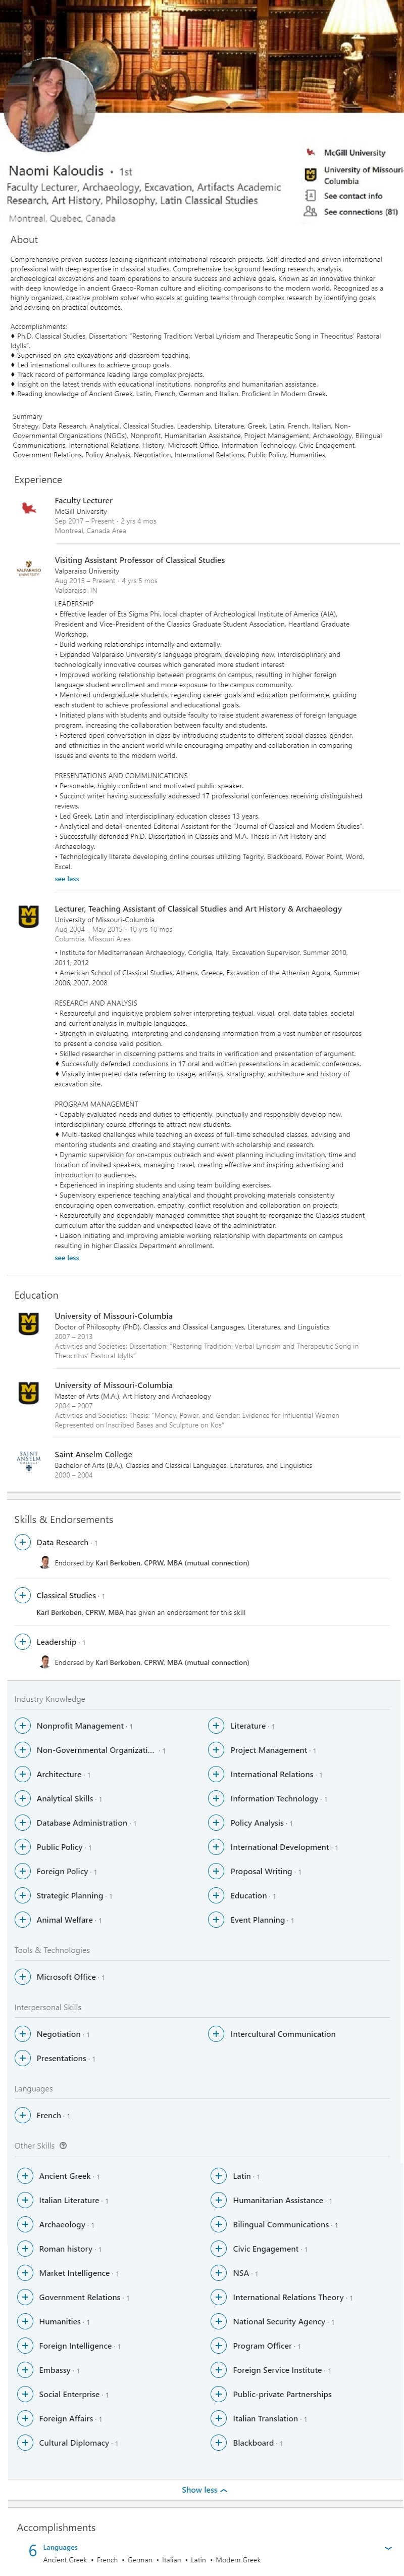 Profile 1501 Sample Linkedin Profile Example Higher Education Faculty Academic Research